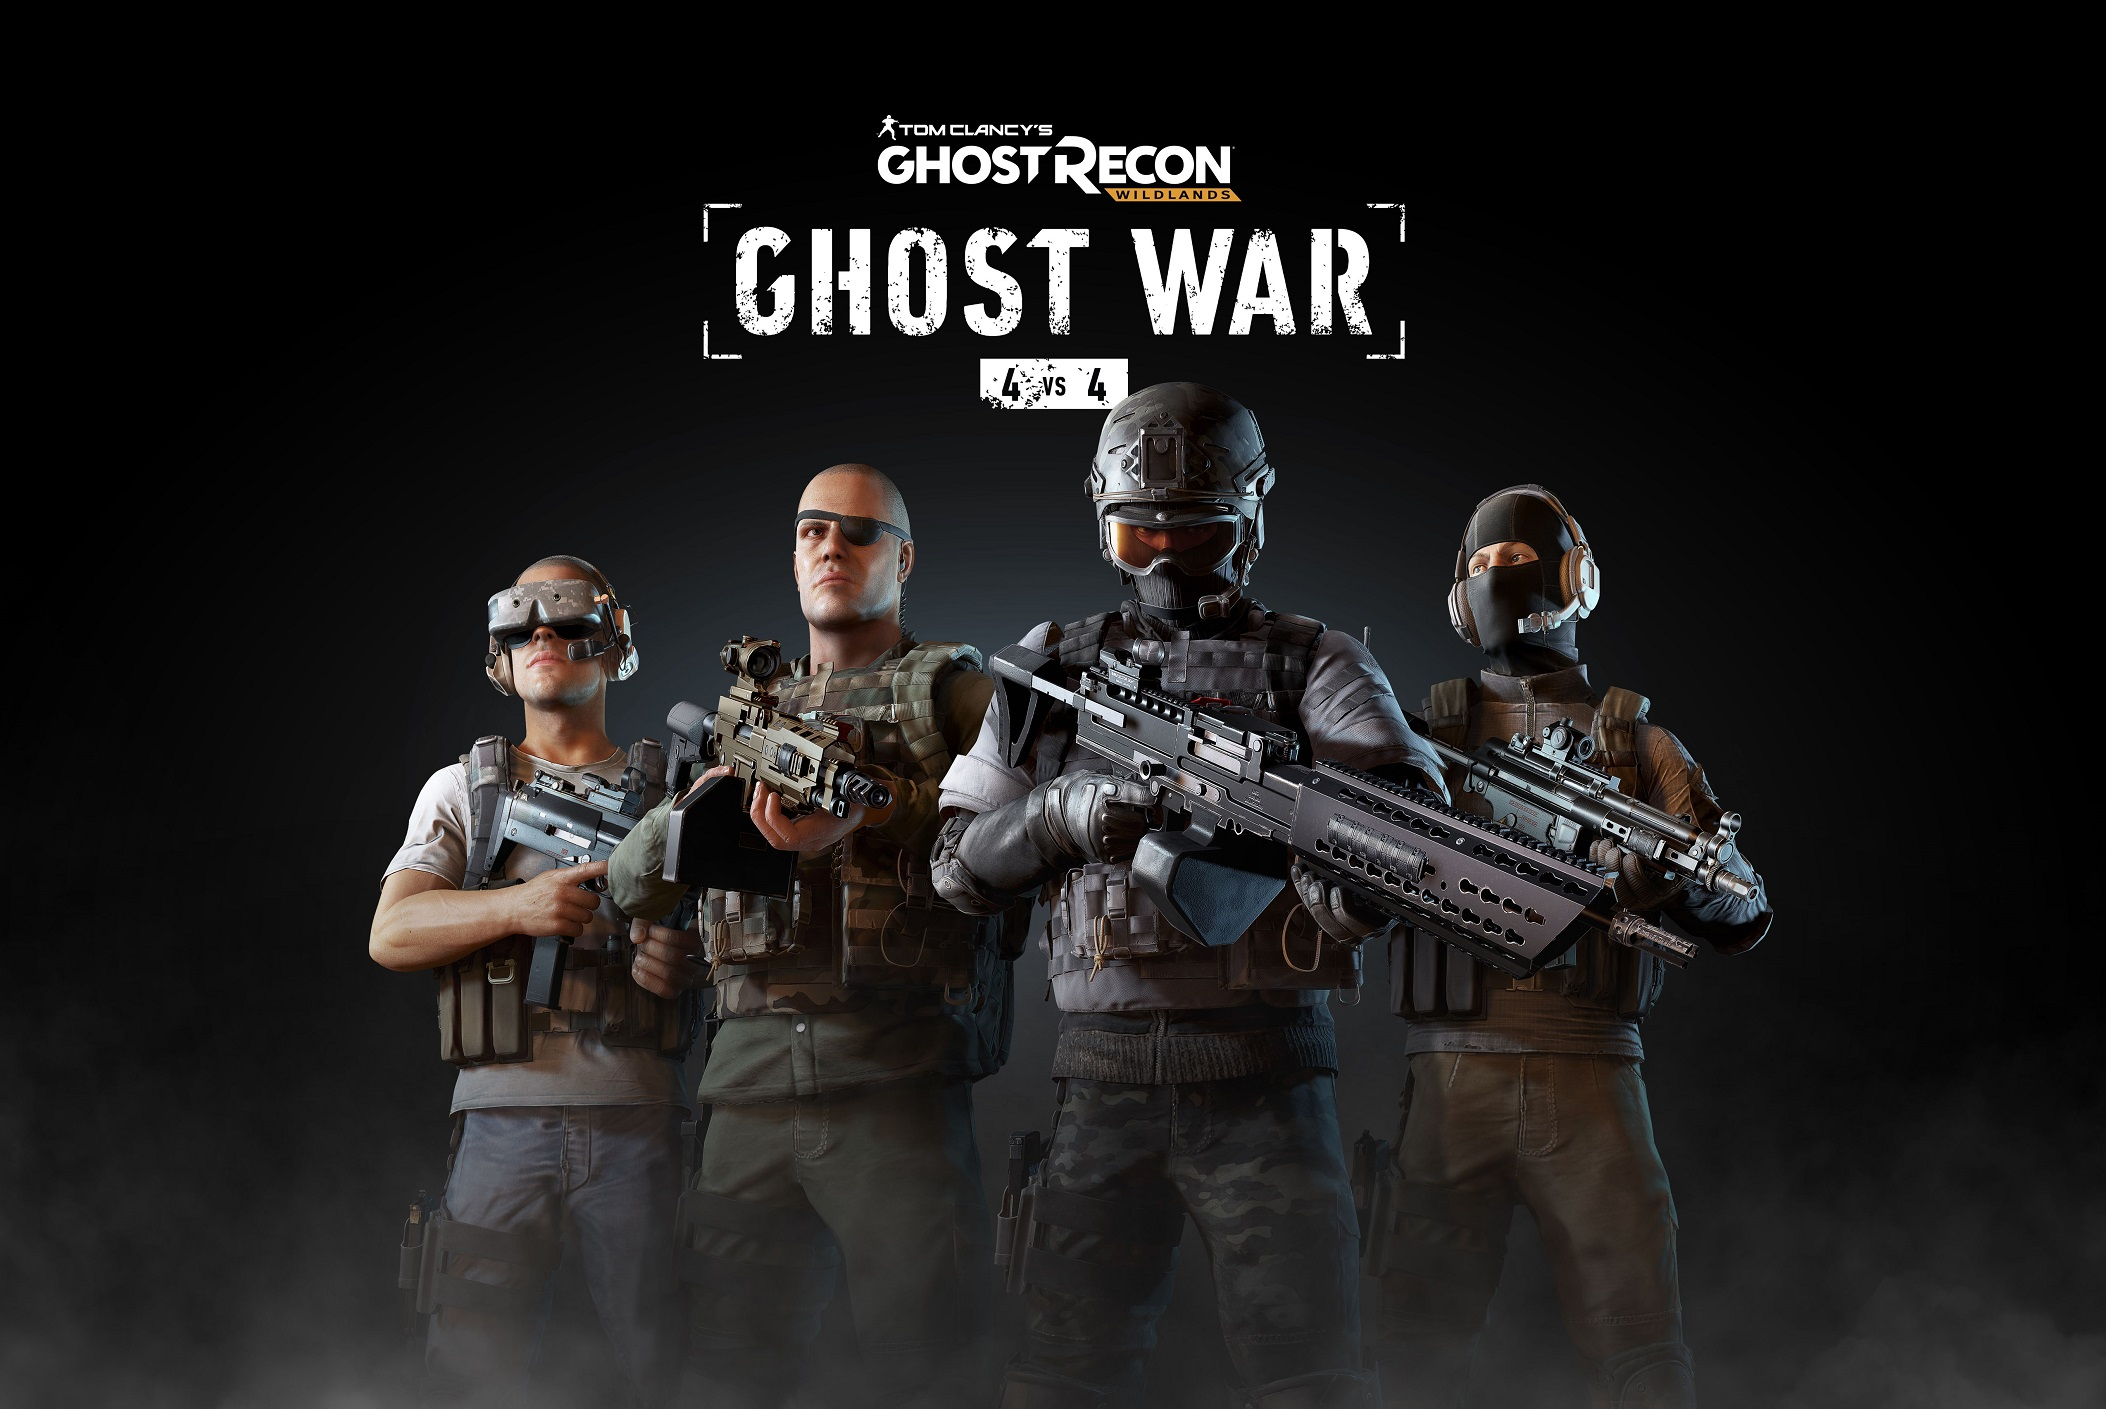 """Ghost Recon Wildlands""-PvP in ""Ghost War"" eSport Ligen in Europa, oder Deutschland"